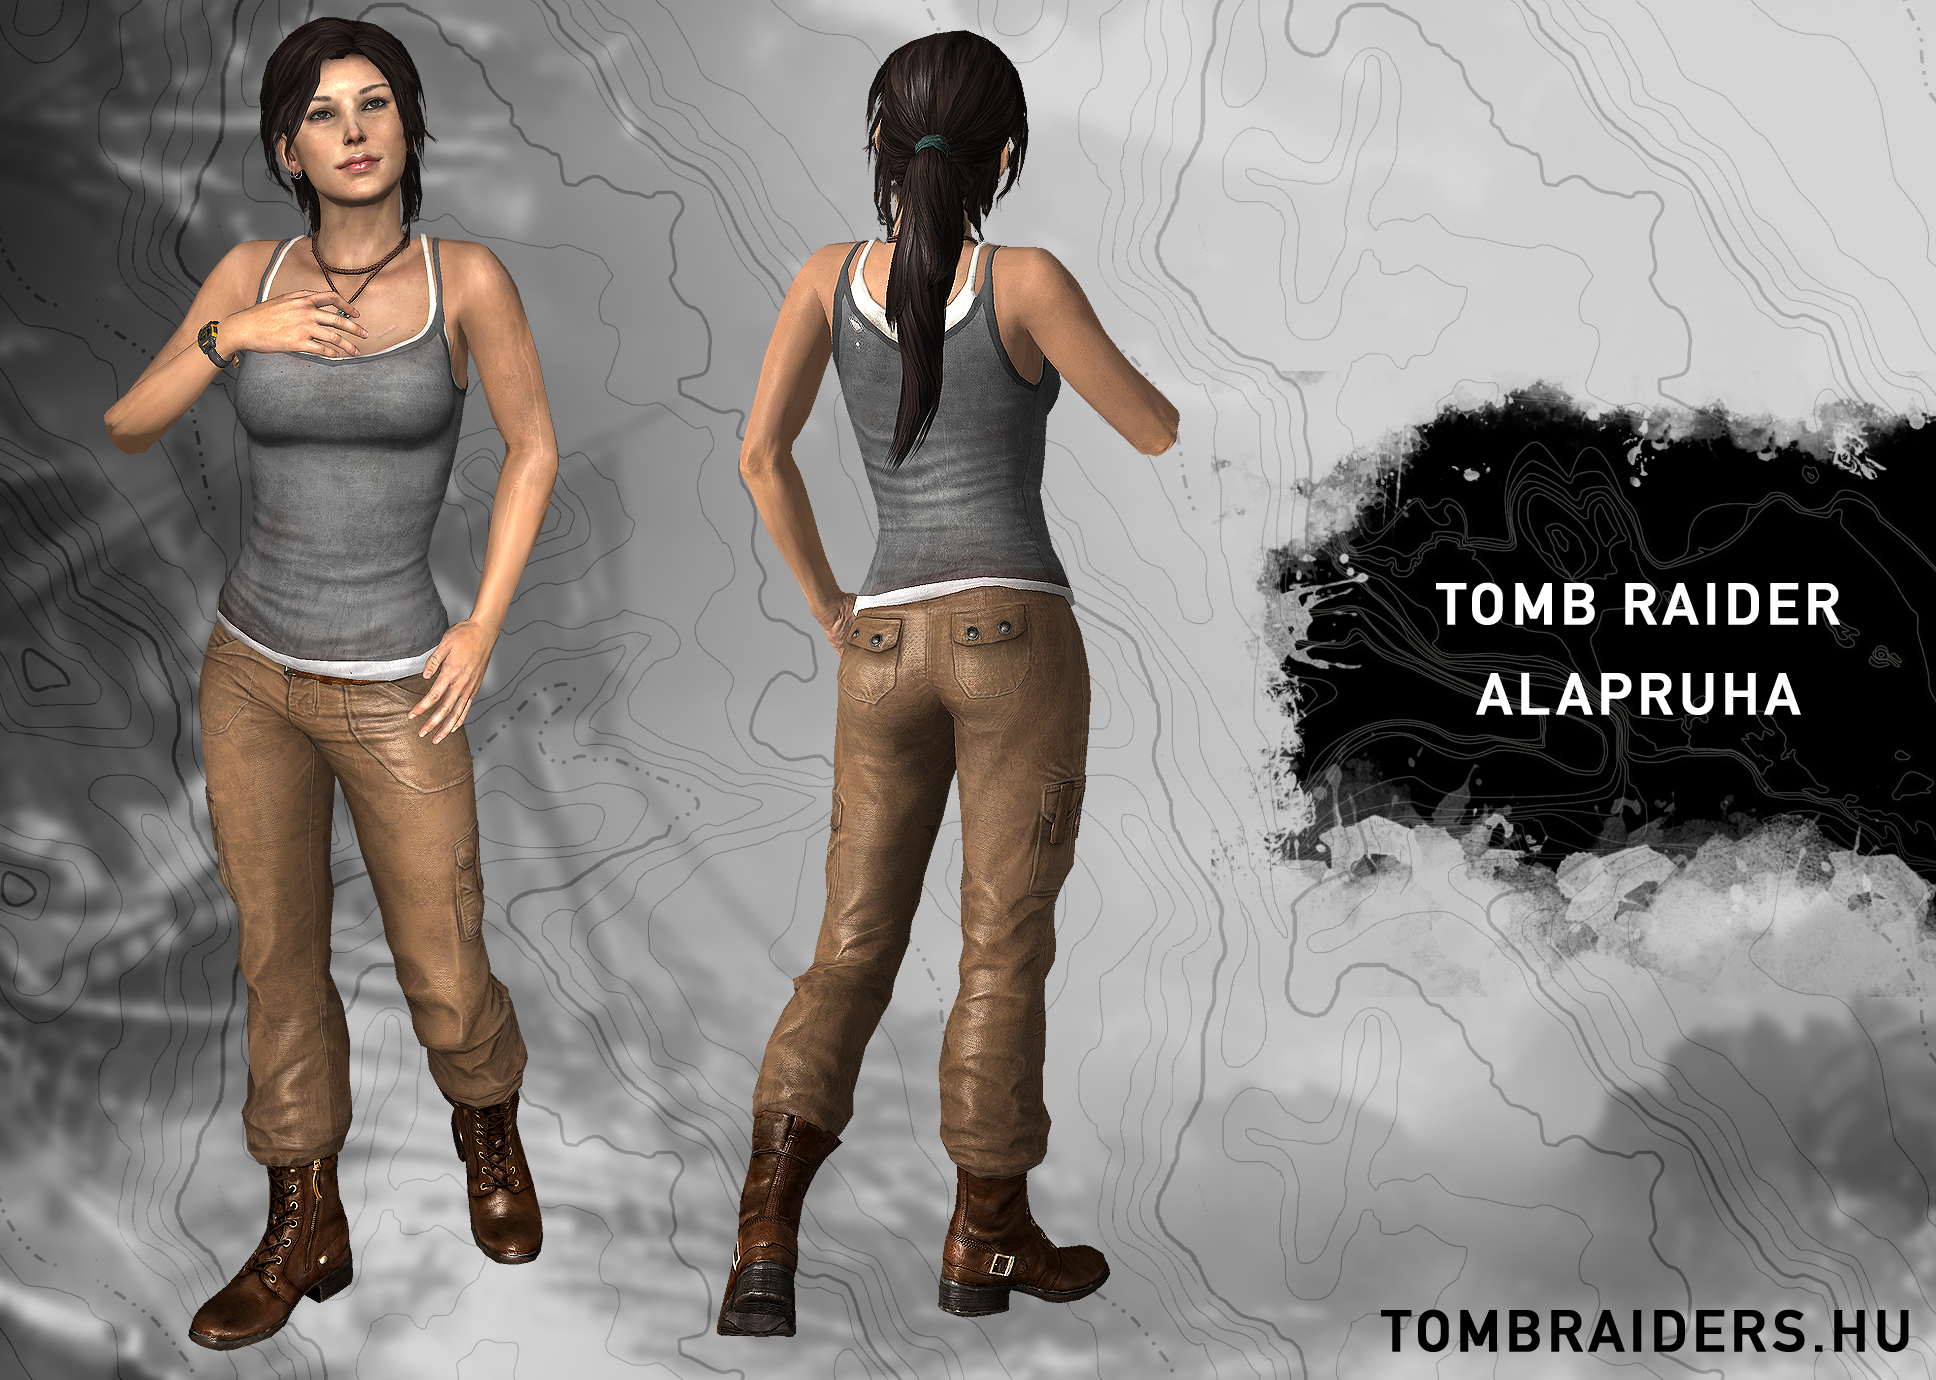 Tomb raider 2023 outfits nsfw clips